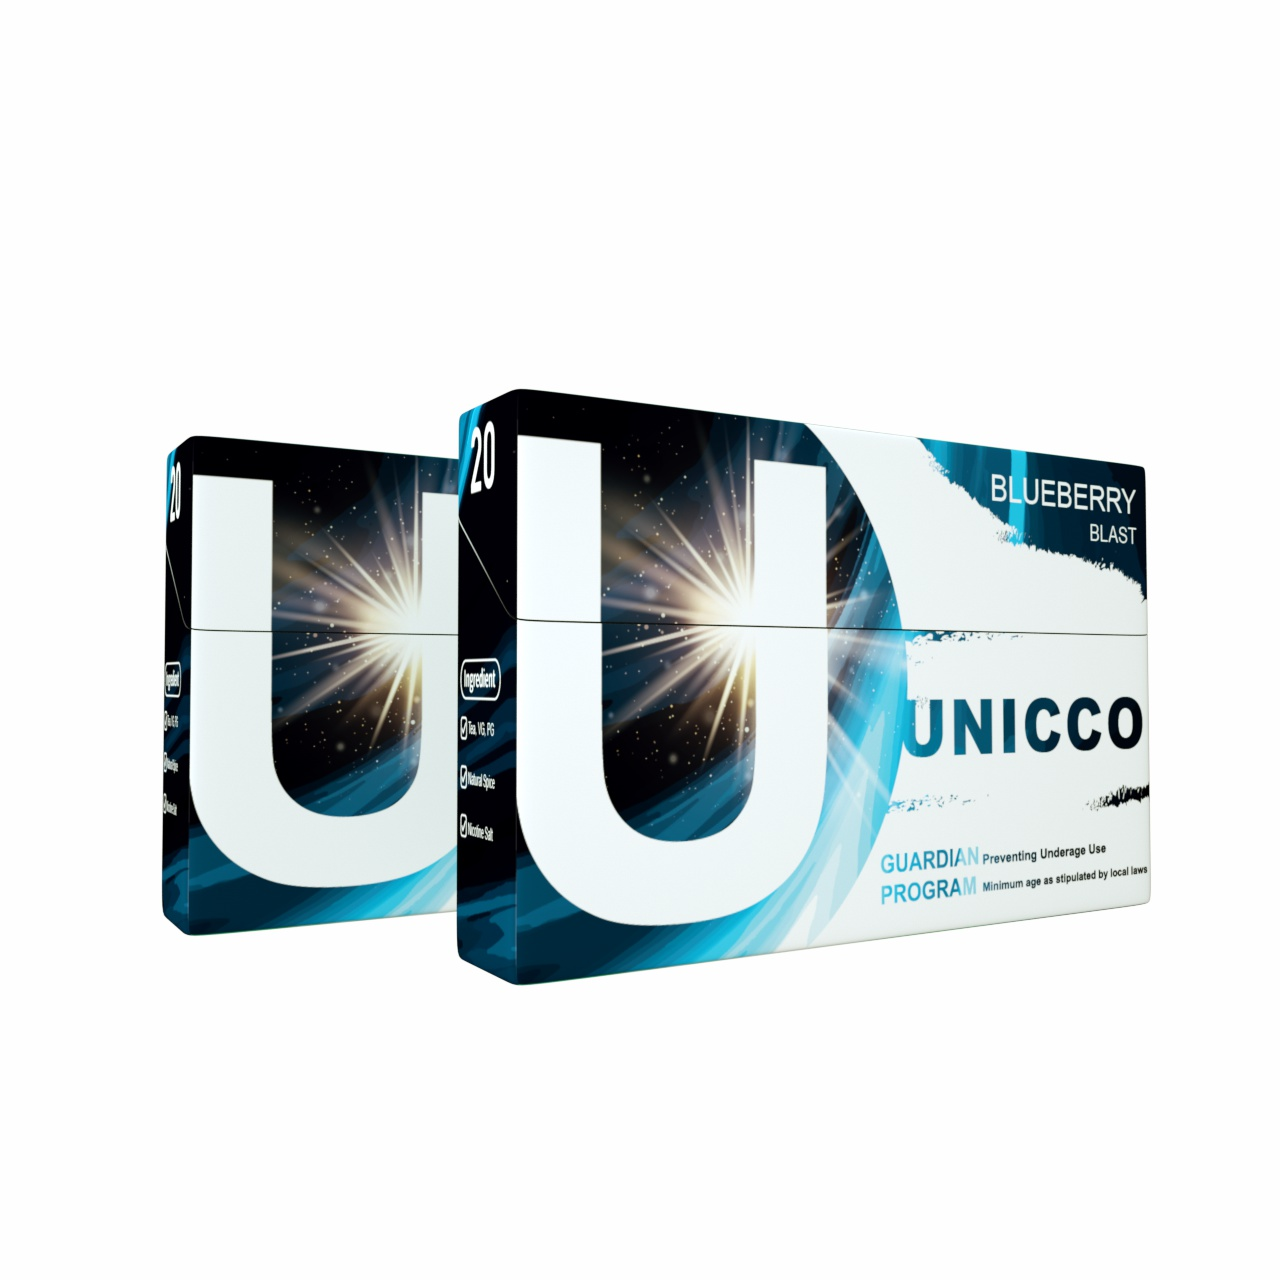 UNICCO-HEAT HERBAL STICKS-TOBACCO FREE-WITH NICOTINE-BLUEBERRY